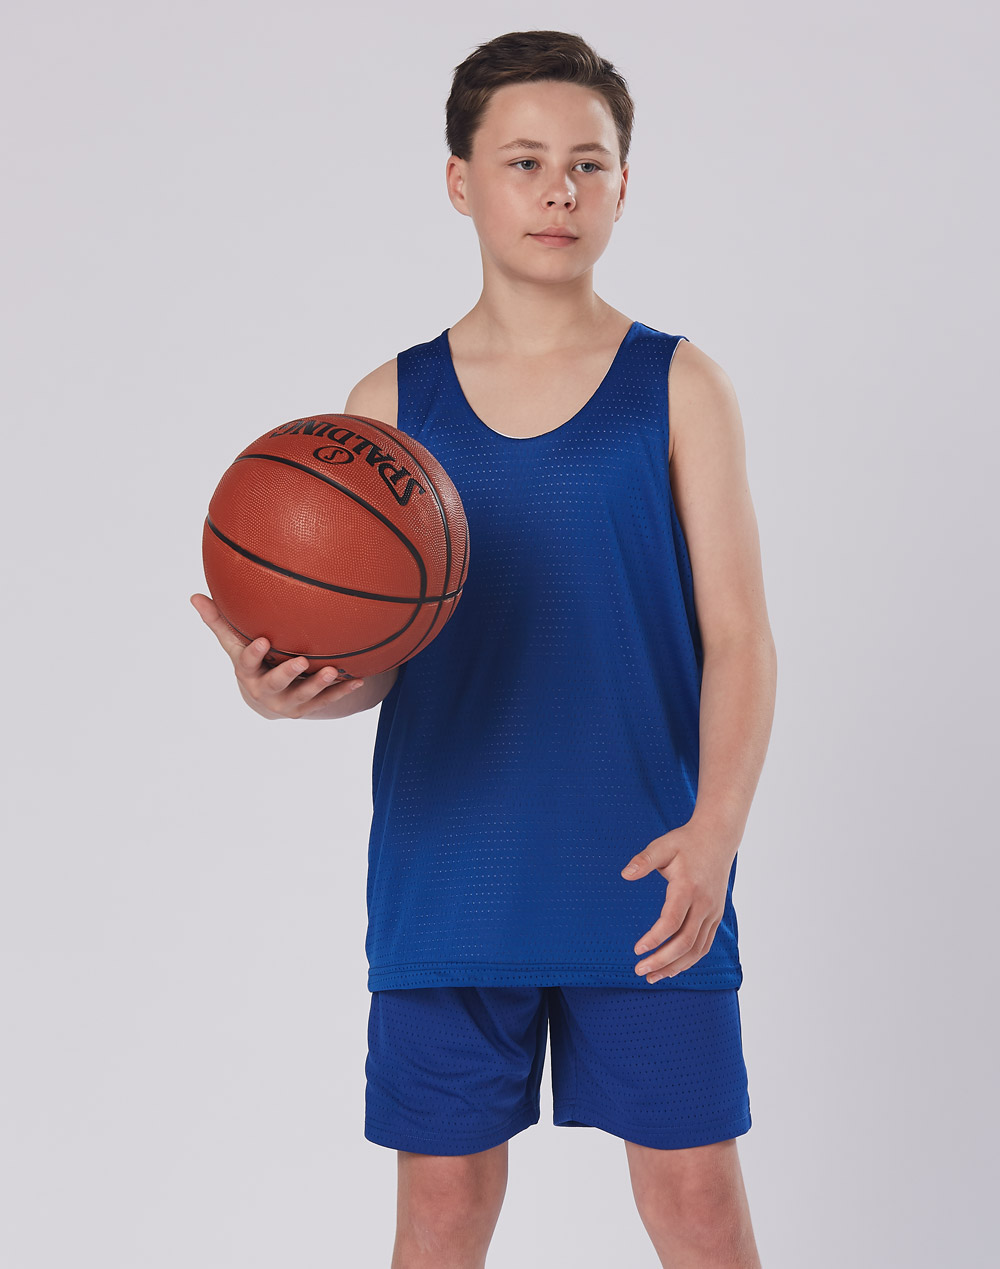 TS81K AIRPASS SINGLET Kids